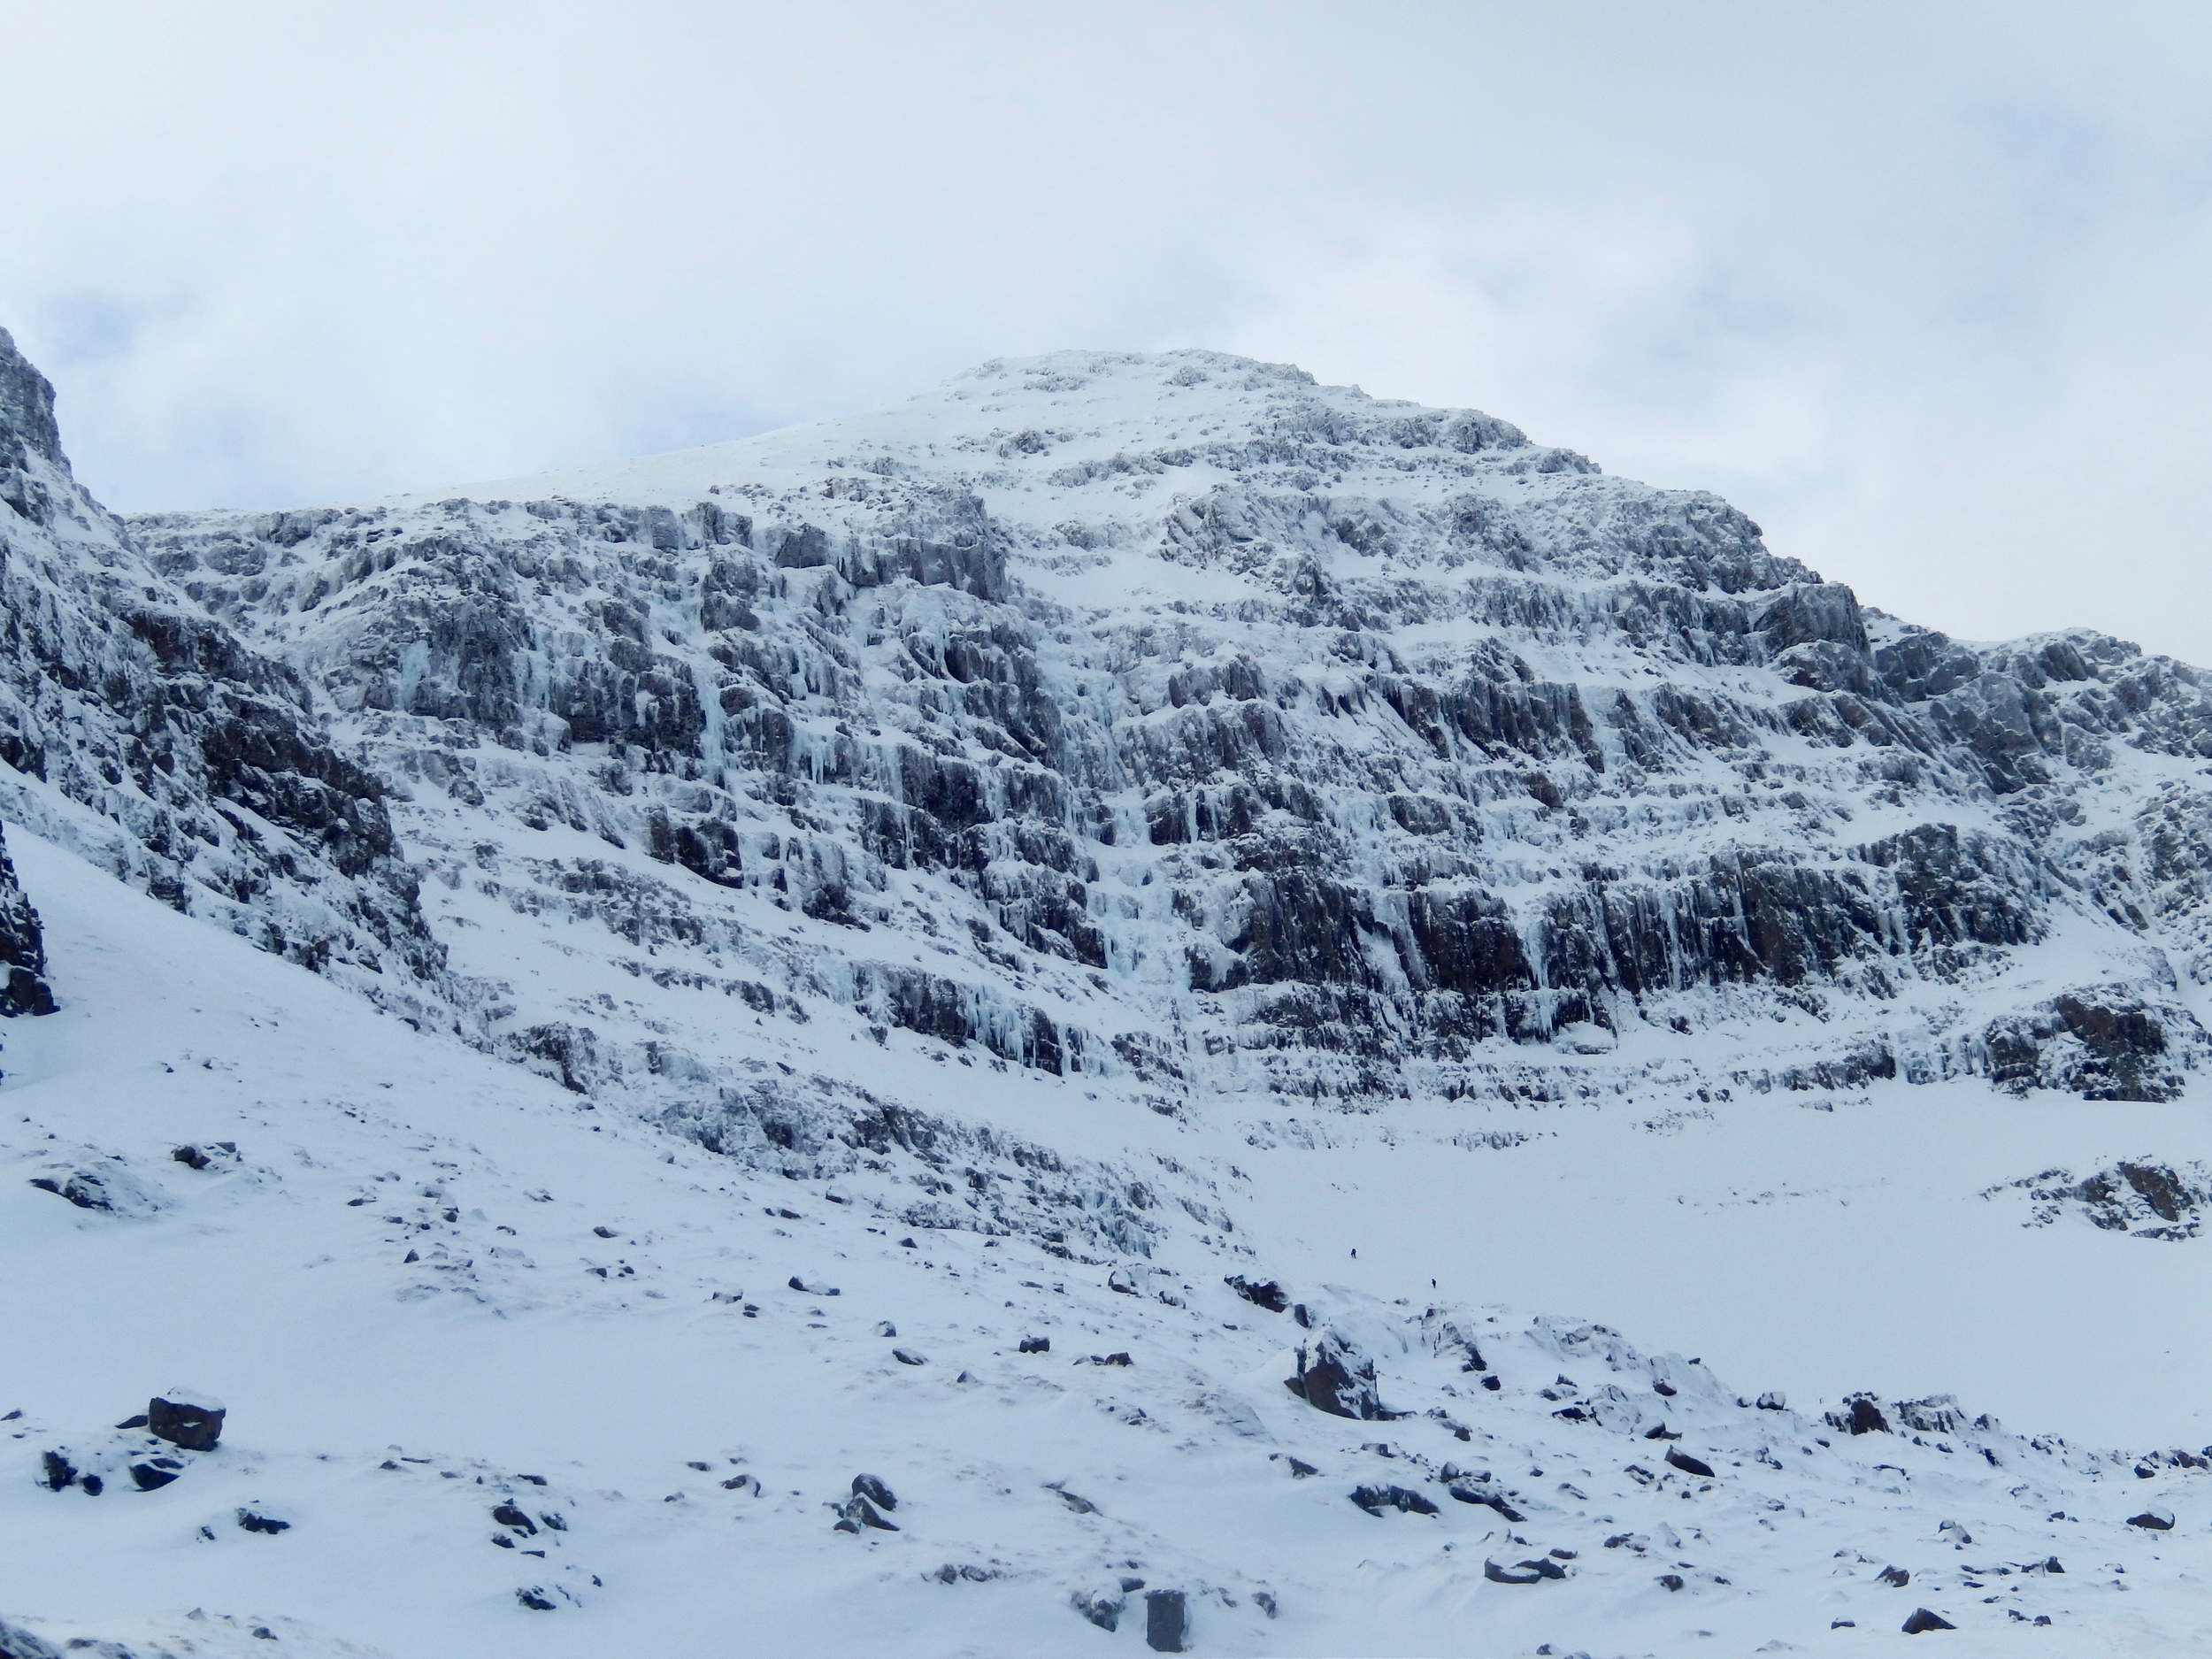 Coire Dubh Mor (poachers is the fattest looking ice in the middle)